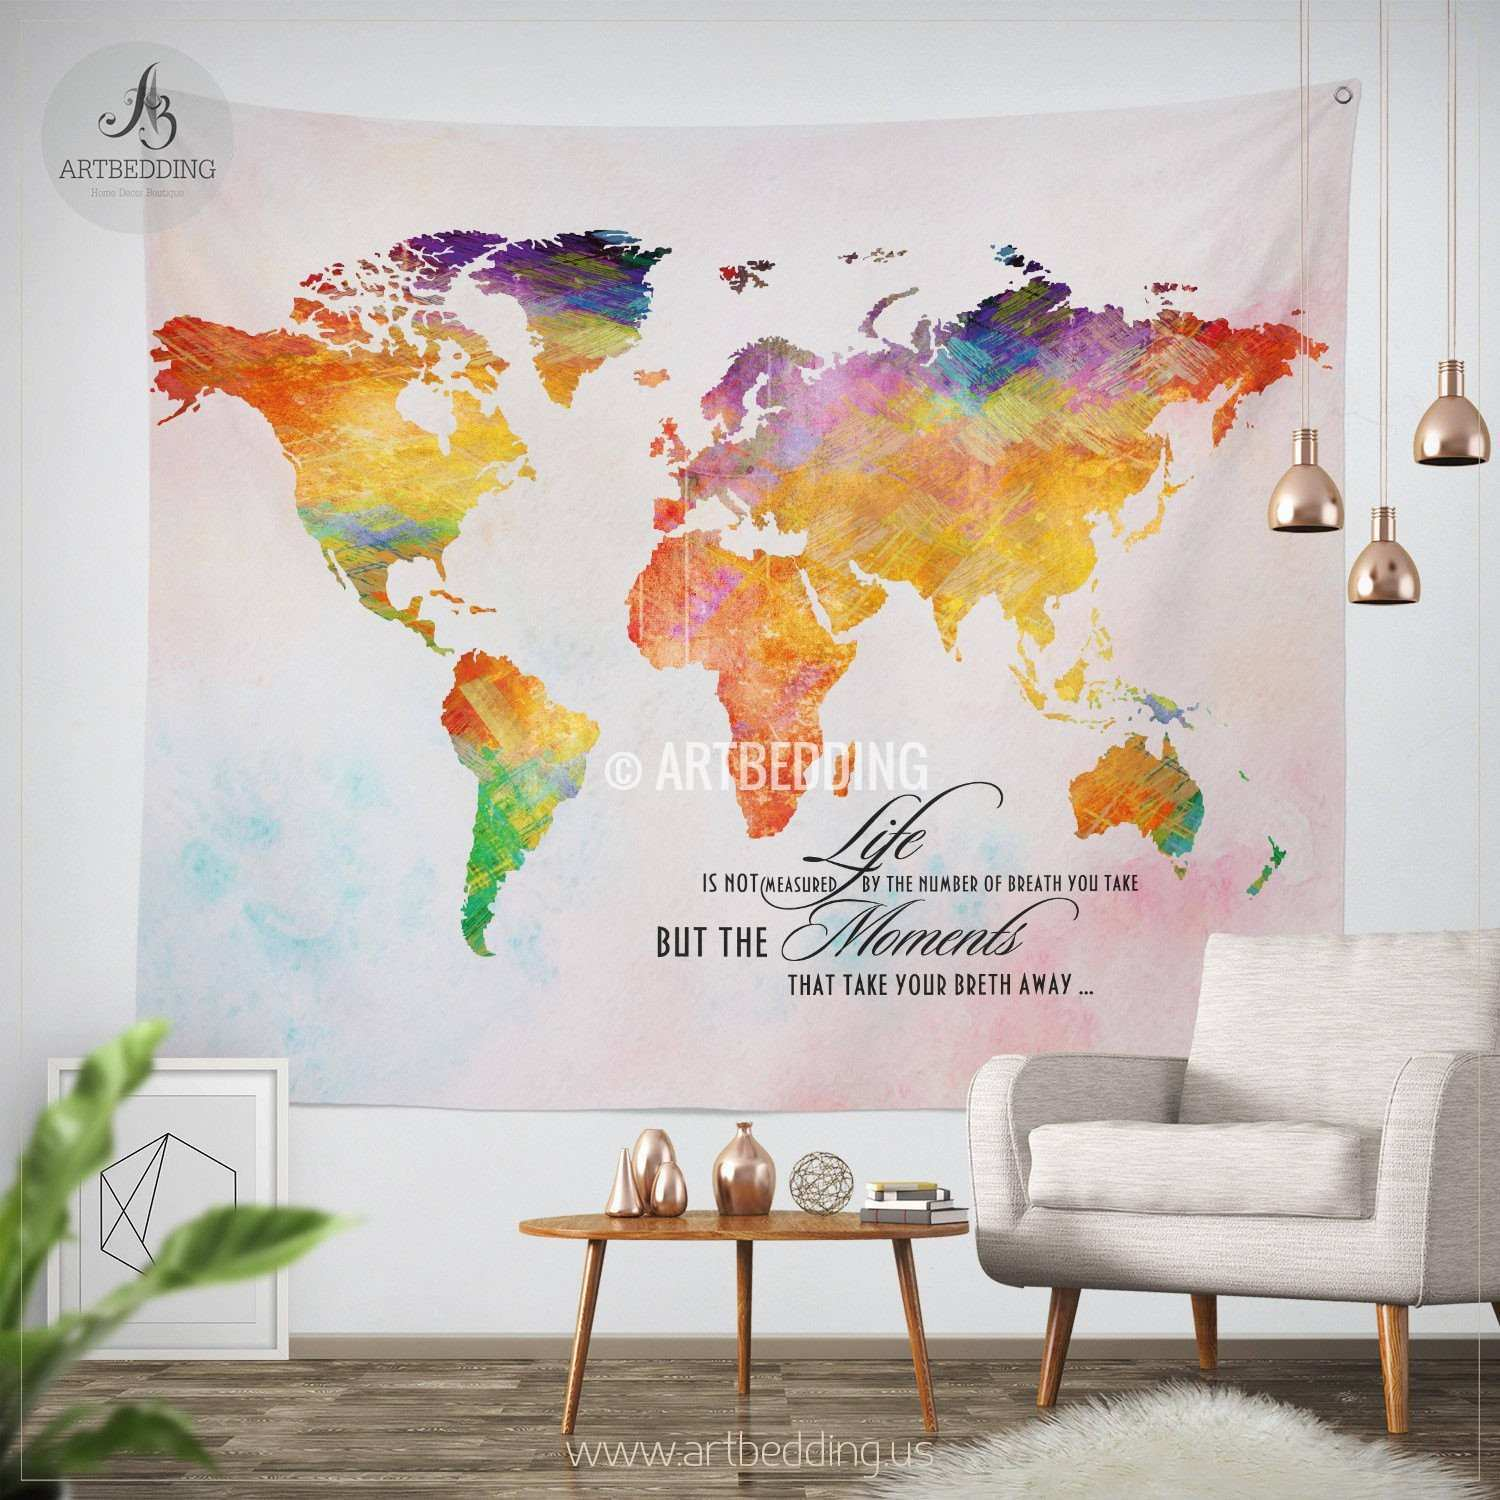 Quote Wall Decor Choice Image home design wall stickers